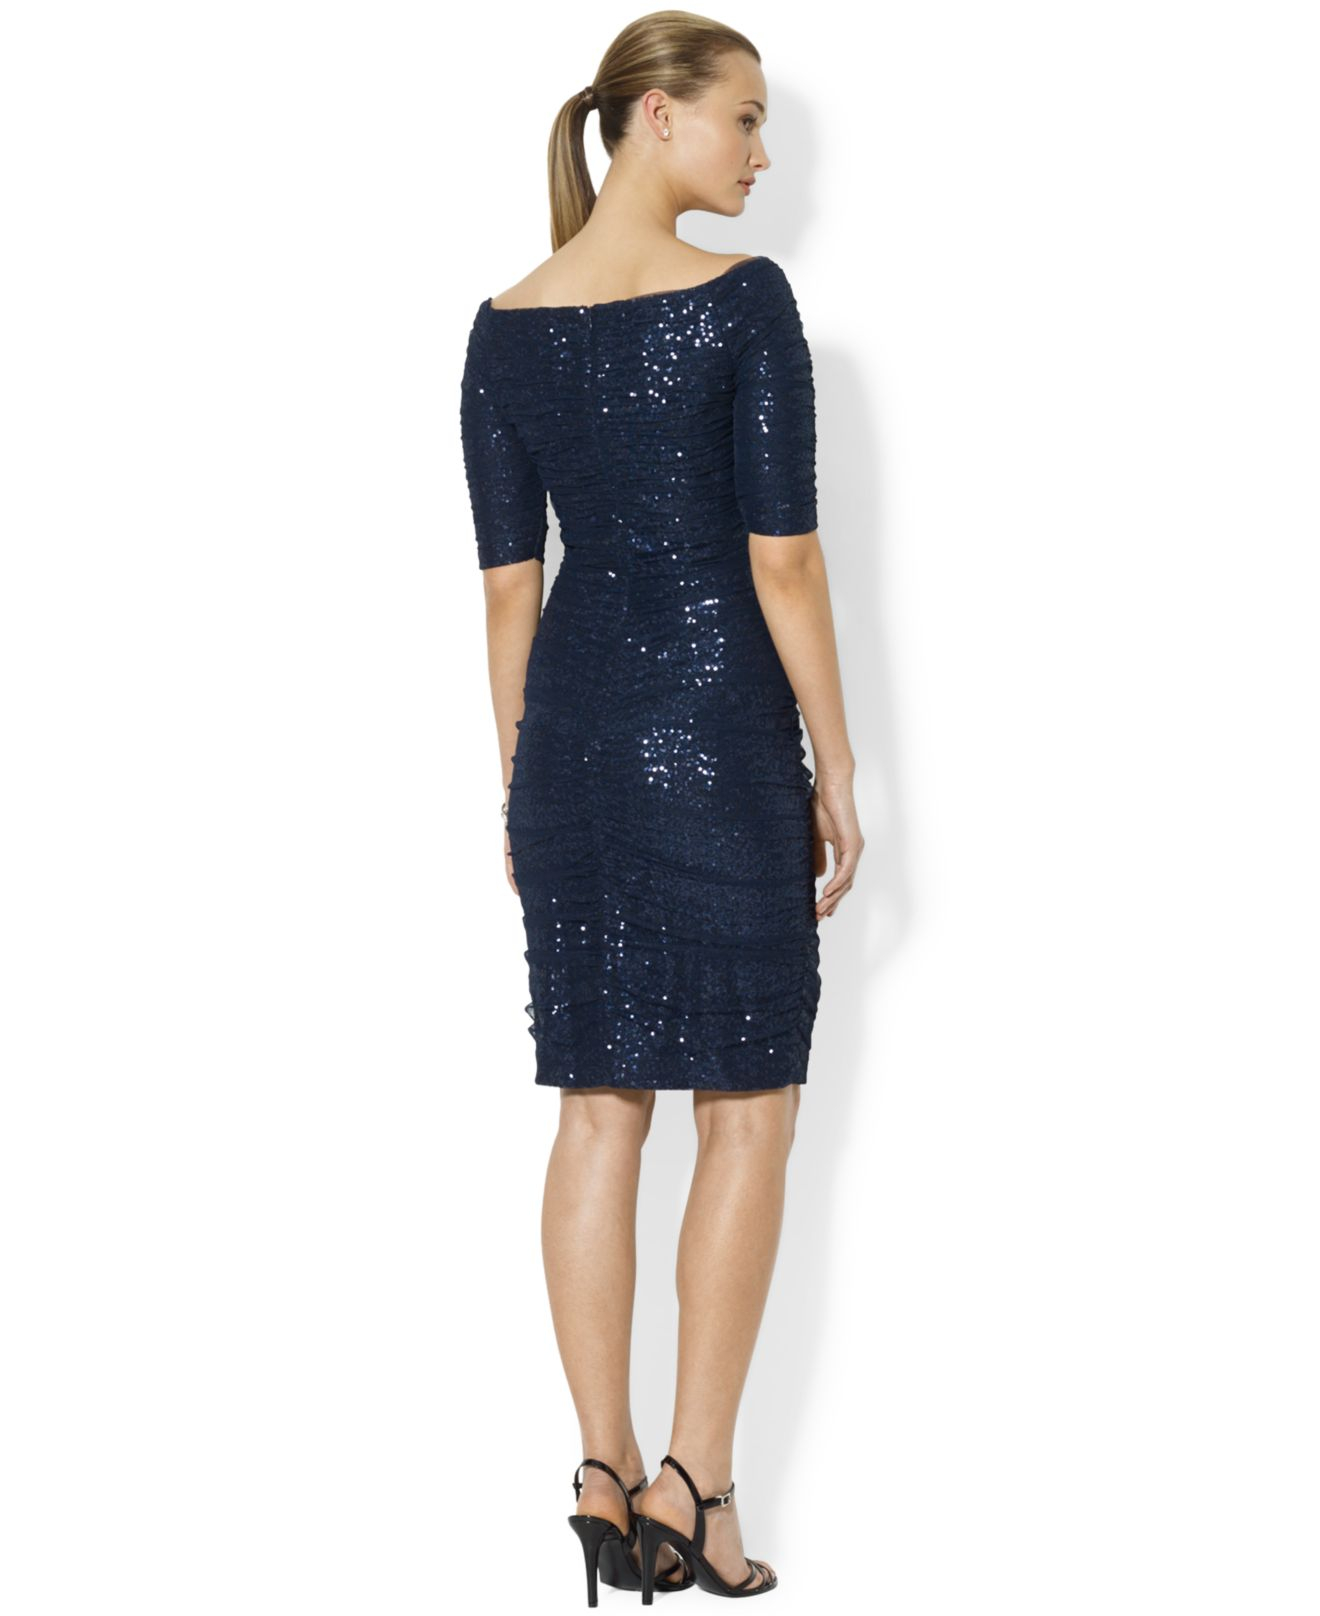 8e9796fa Ralph Lauren Sequin Dress - Dress Foto and Picture